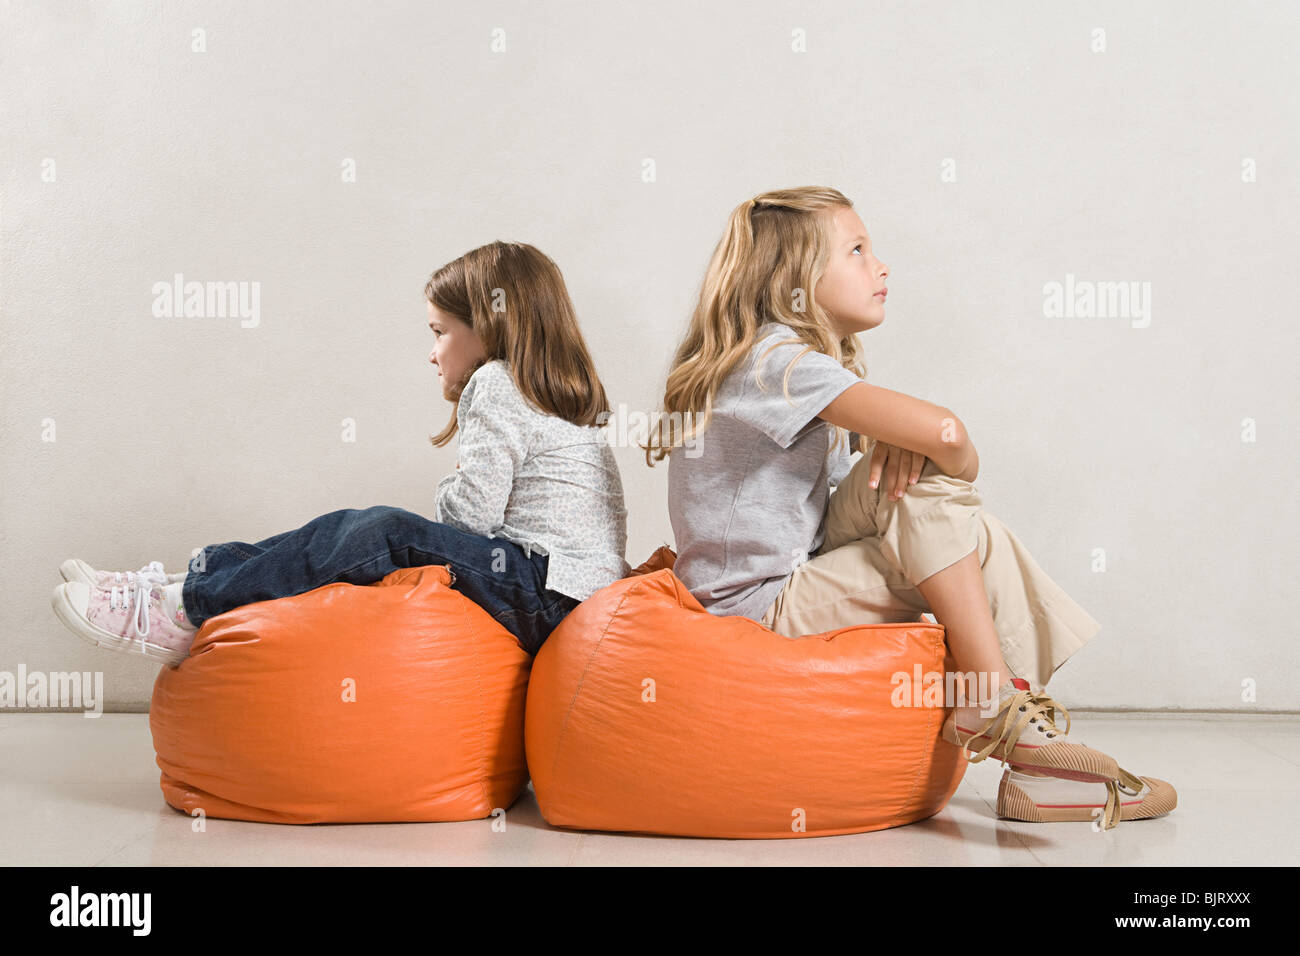 Sisters sat back to back on beanbags - Stock Image